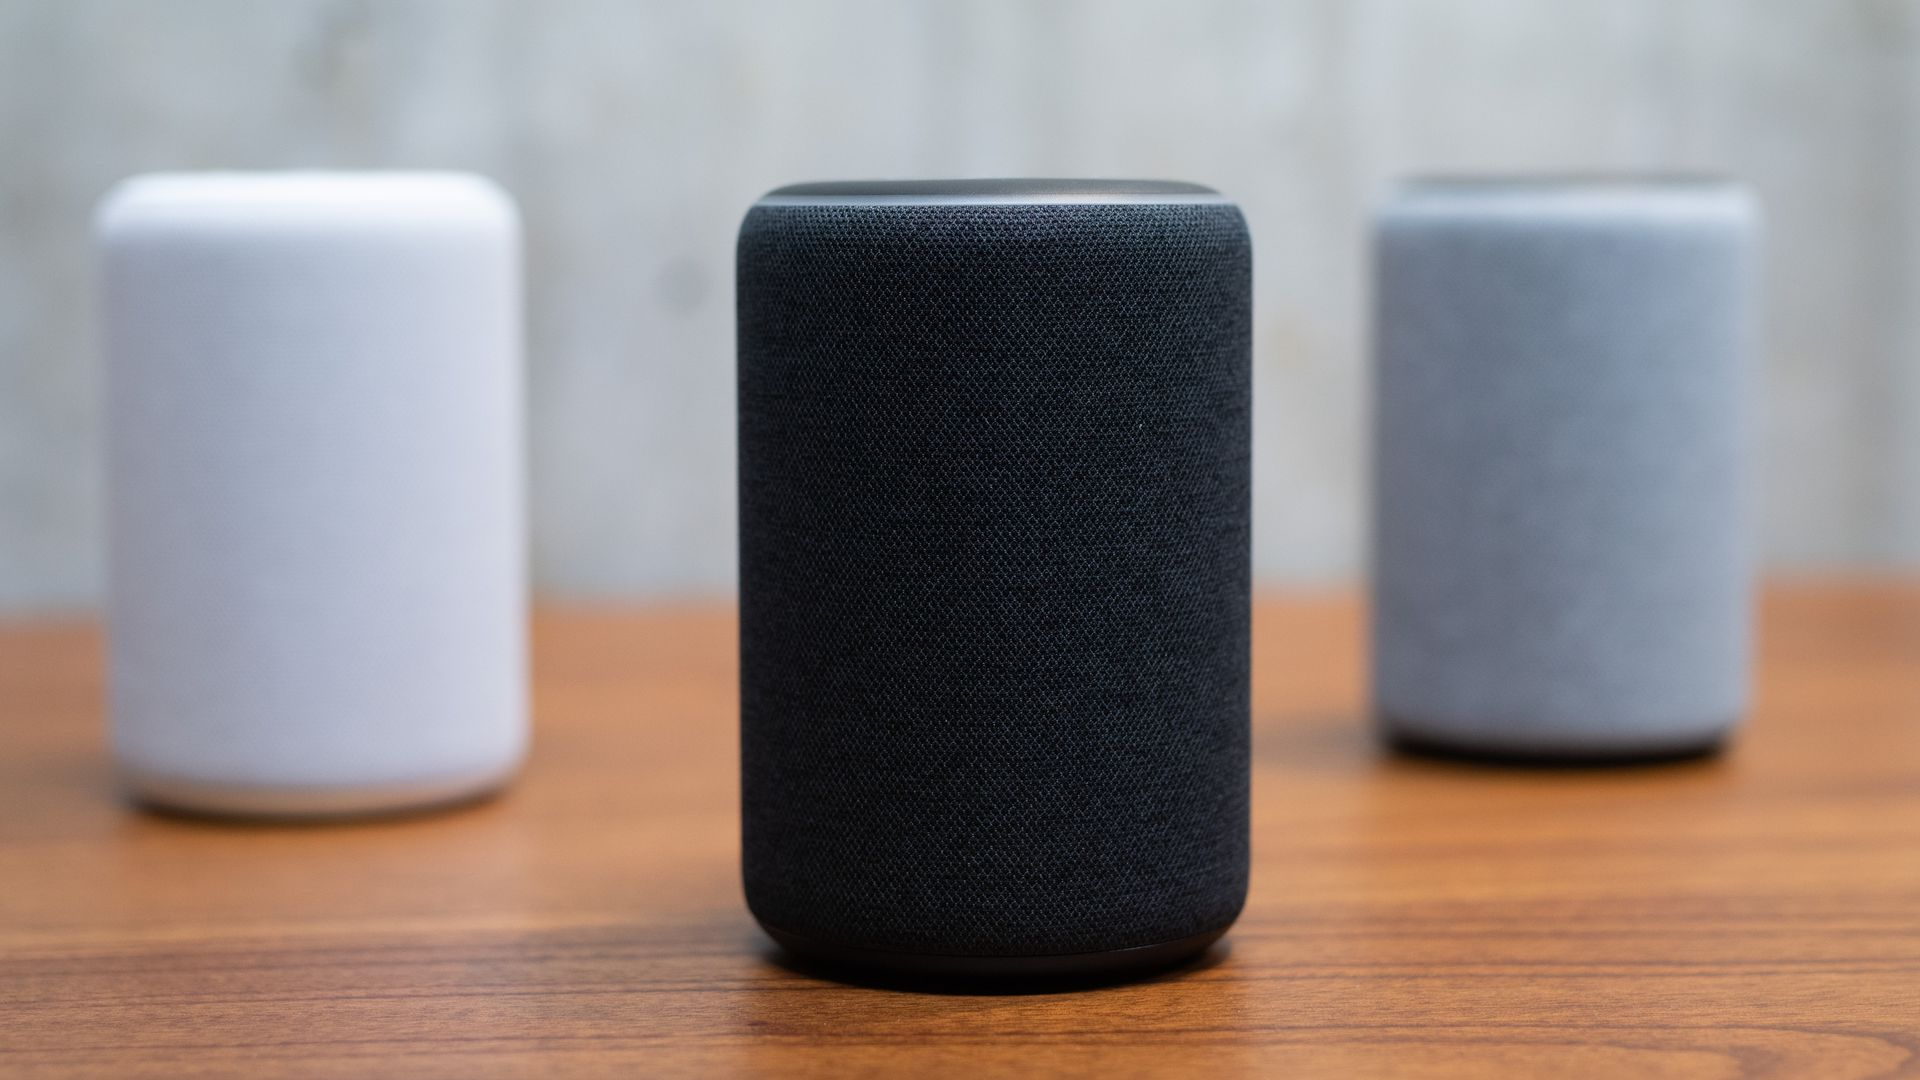 In this image, a white Amazon Alexa sits next to a black one and a gray one on a wooden countertop.